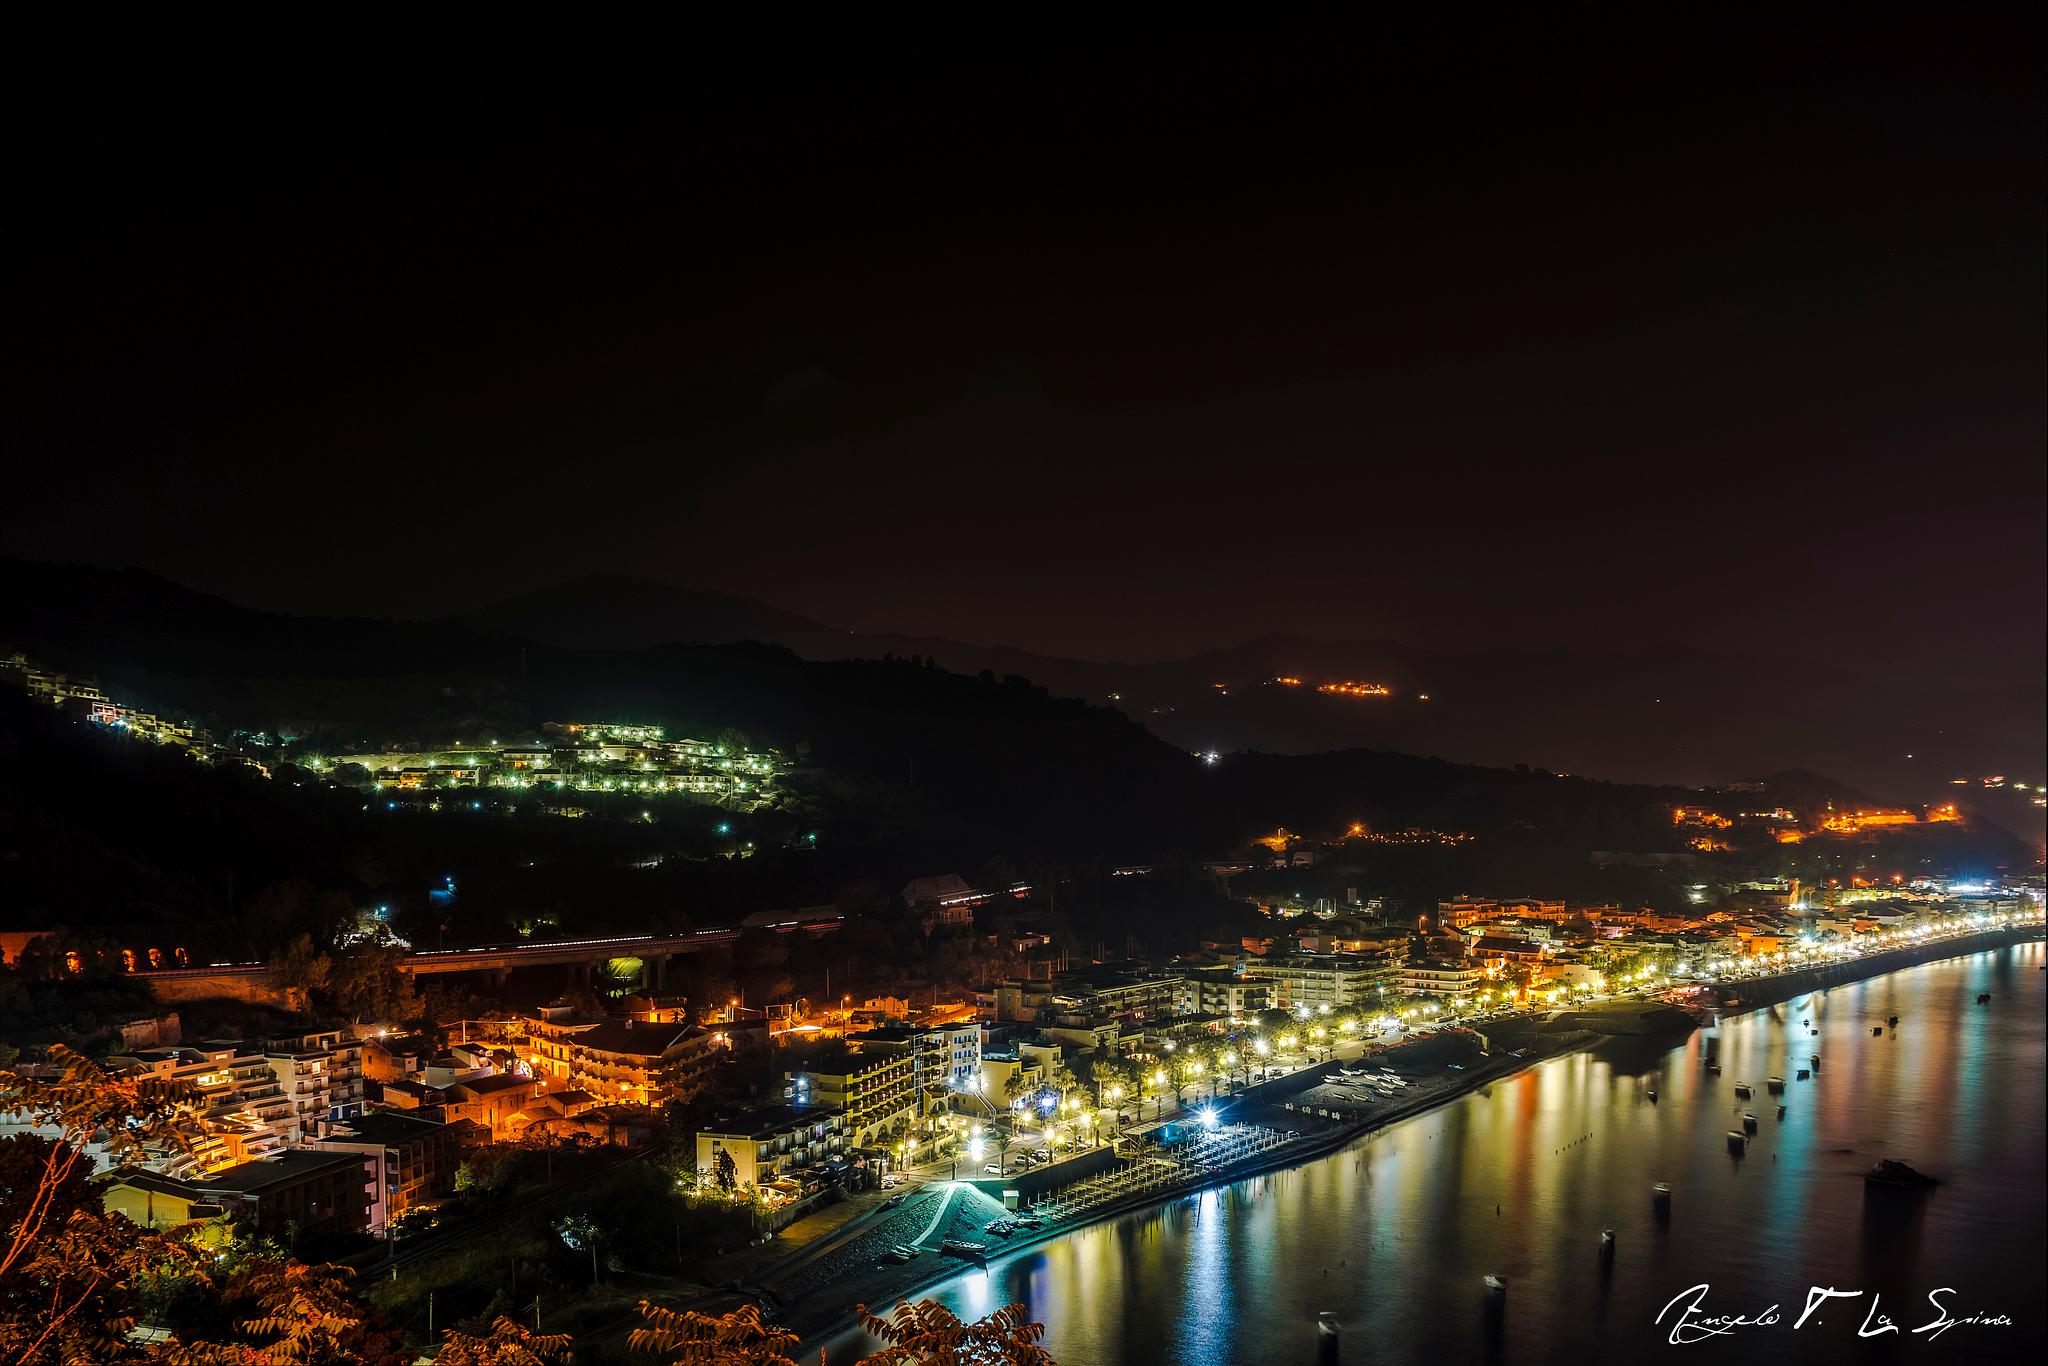 Sant'Alessio Siculo by night by tecchese